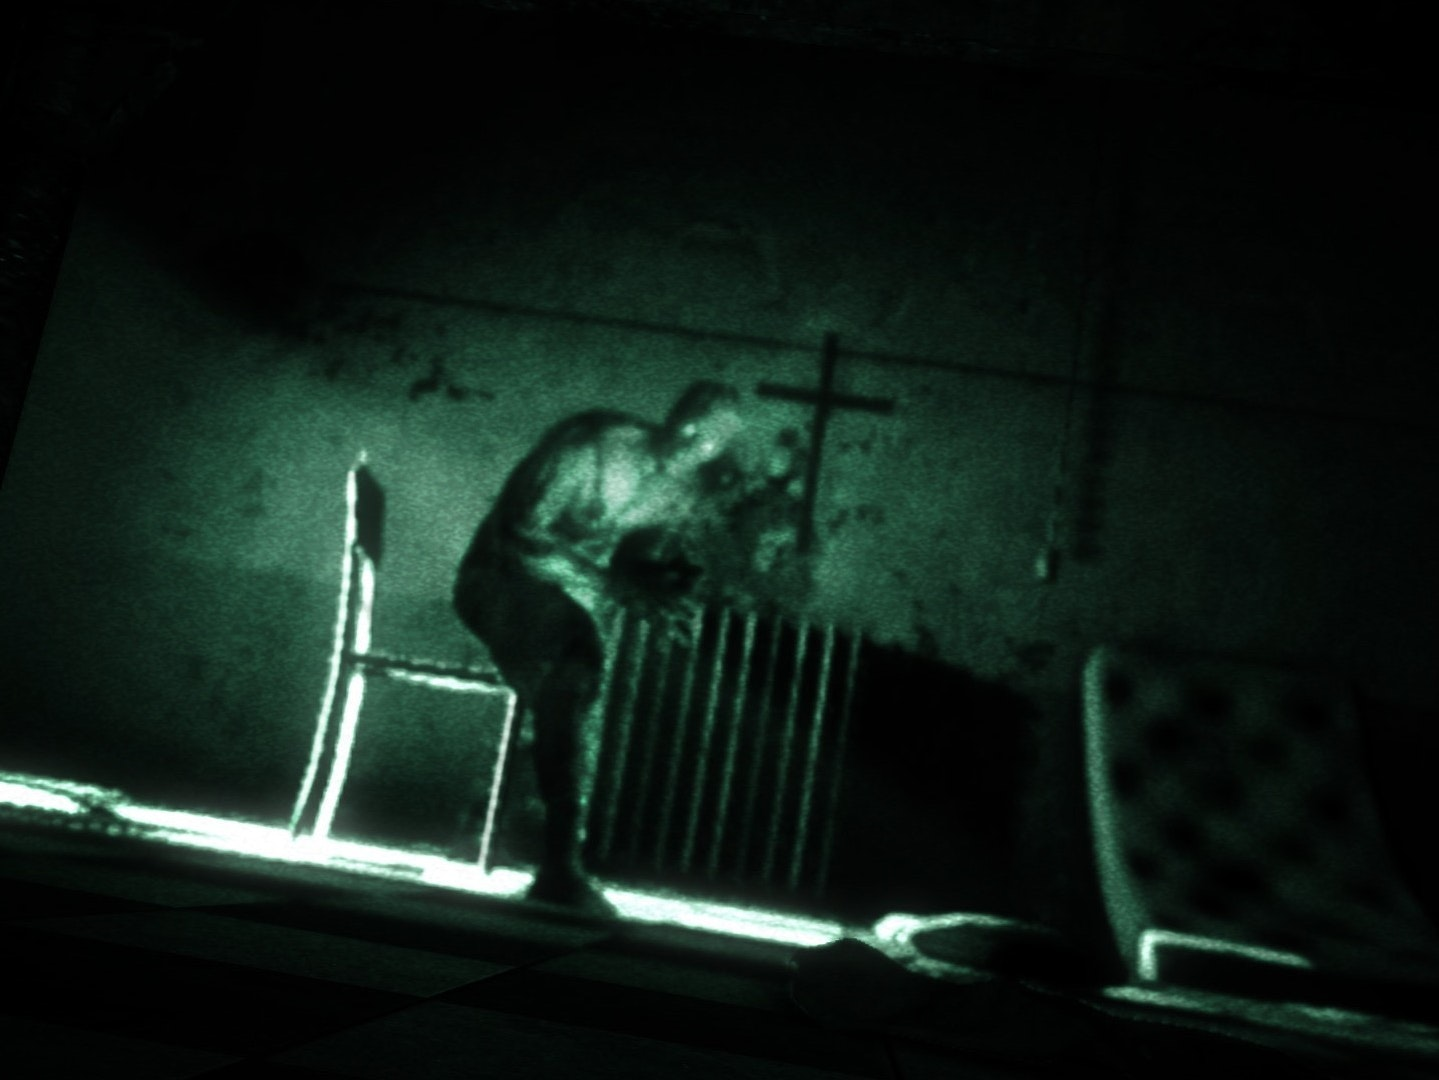 The 10 Best Horror Games to Play on Halloween